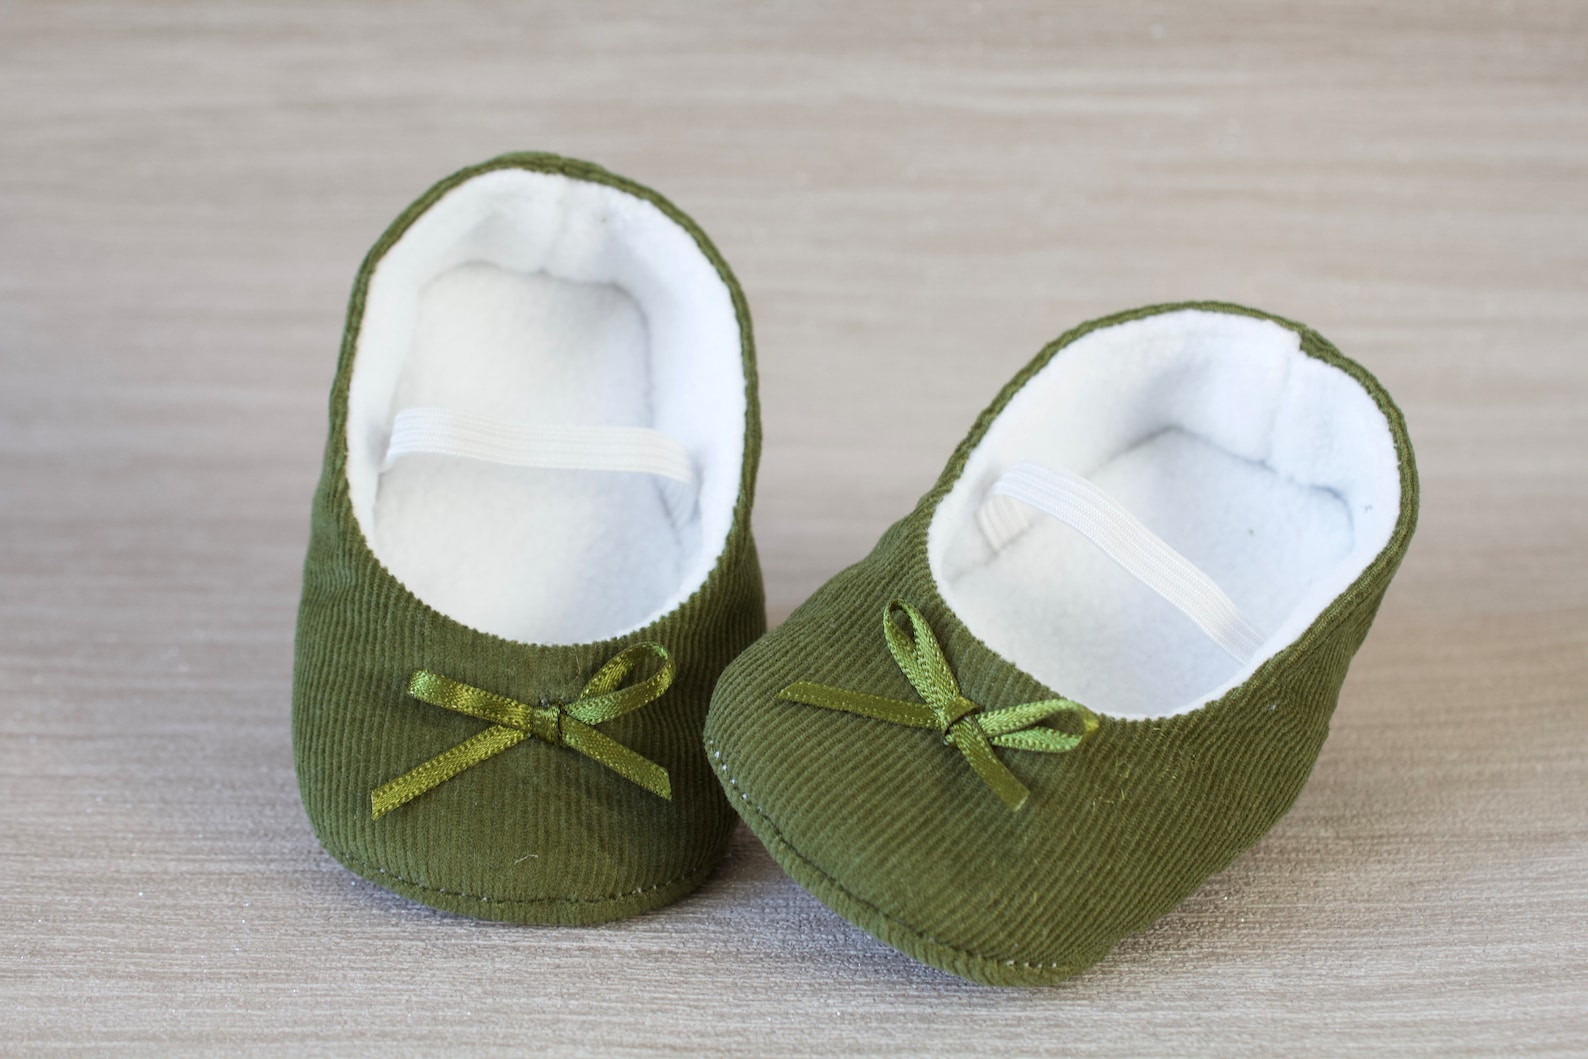 baby girl shoe, baby shoe ballet flat, olive green baby girl shoe, girls shoe, green corduroy ballet flats.